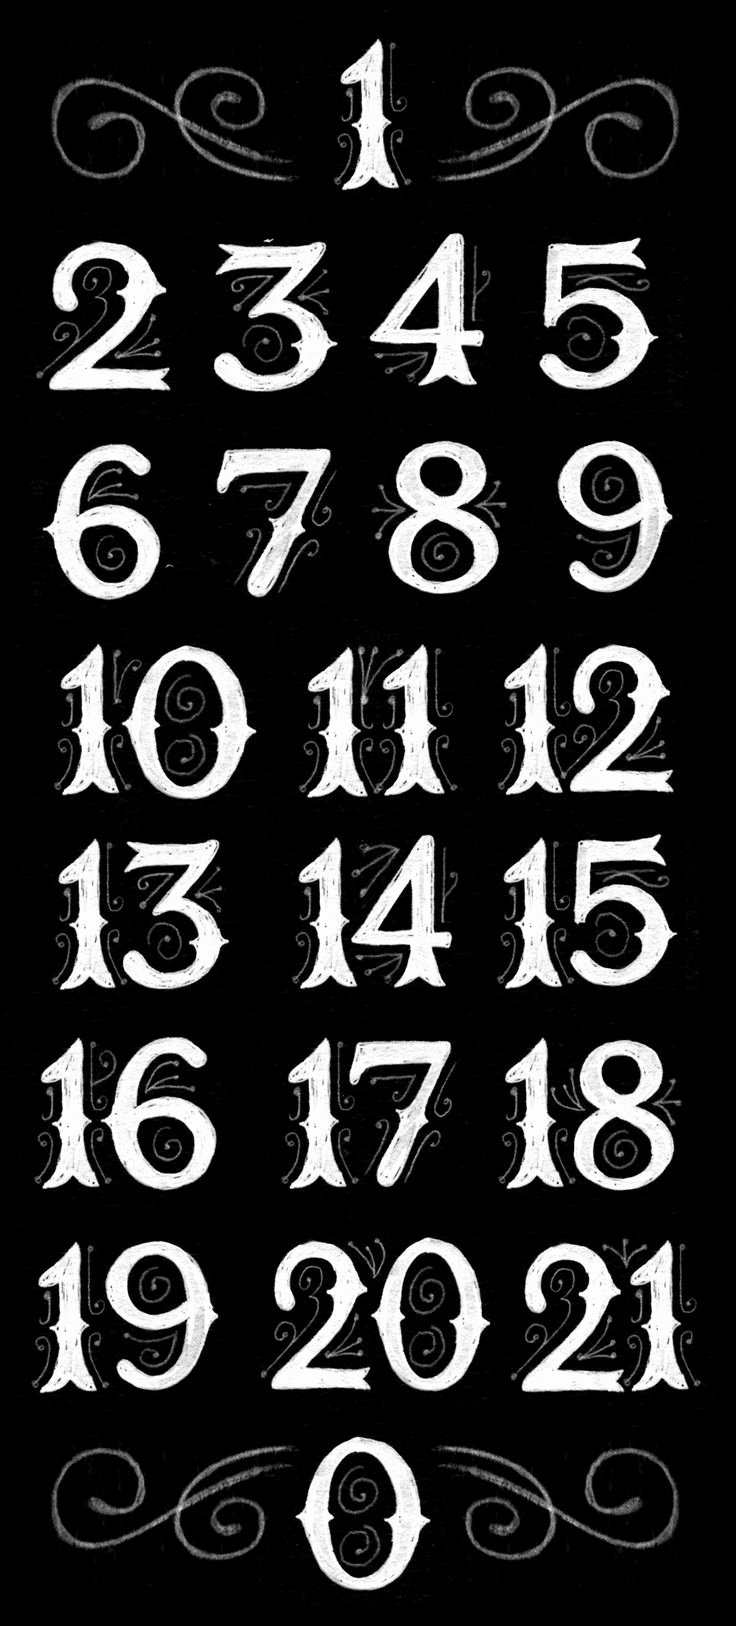 Number Fonts for Tattoos Lovely the 25 Best Number Fonts Ideas On Pinterest